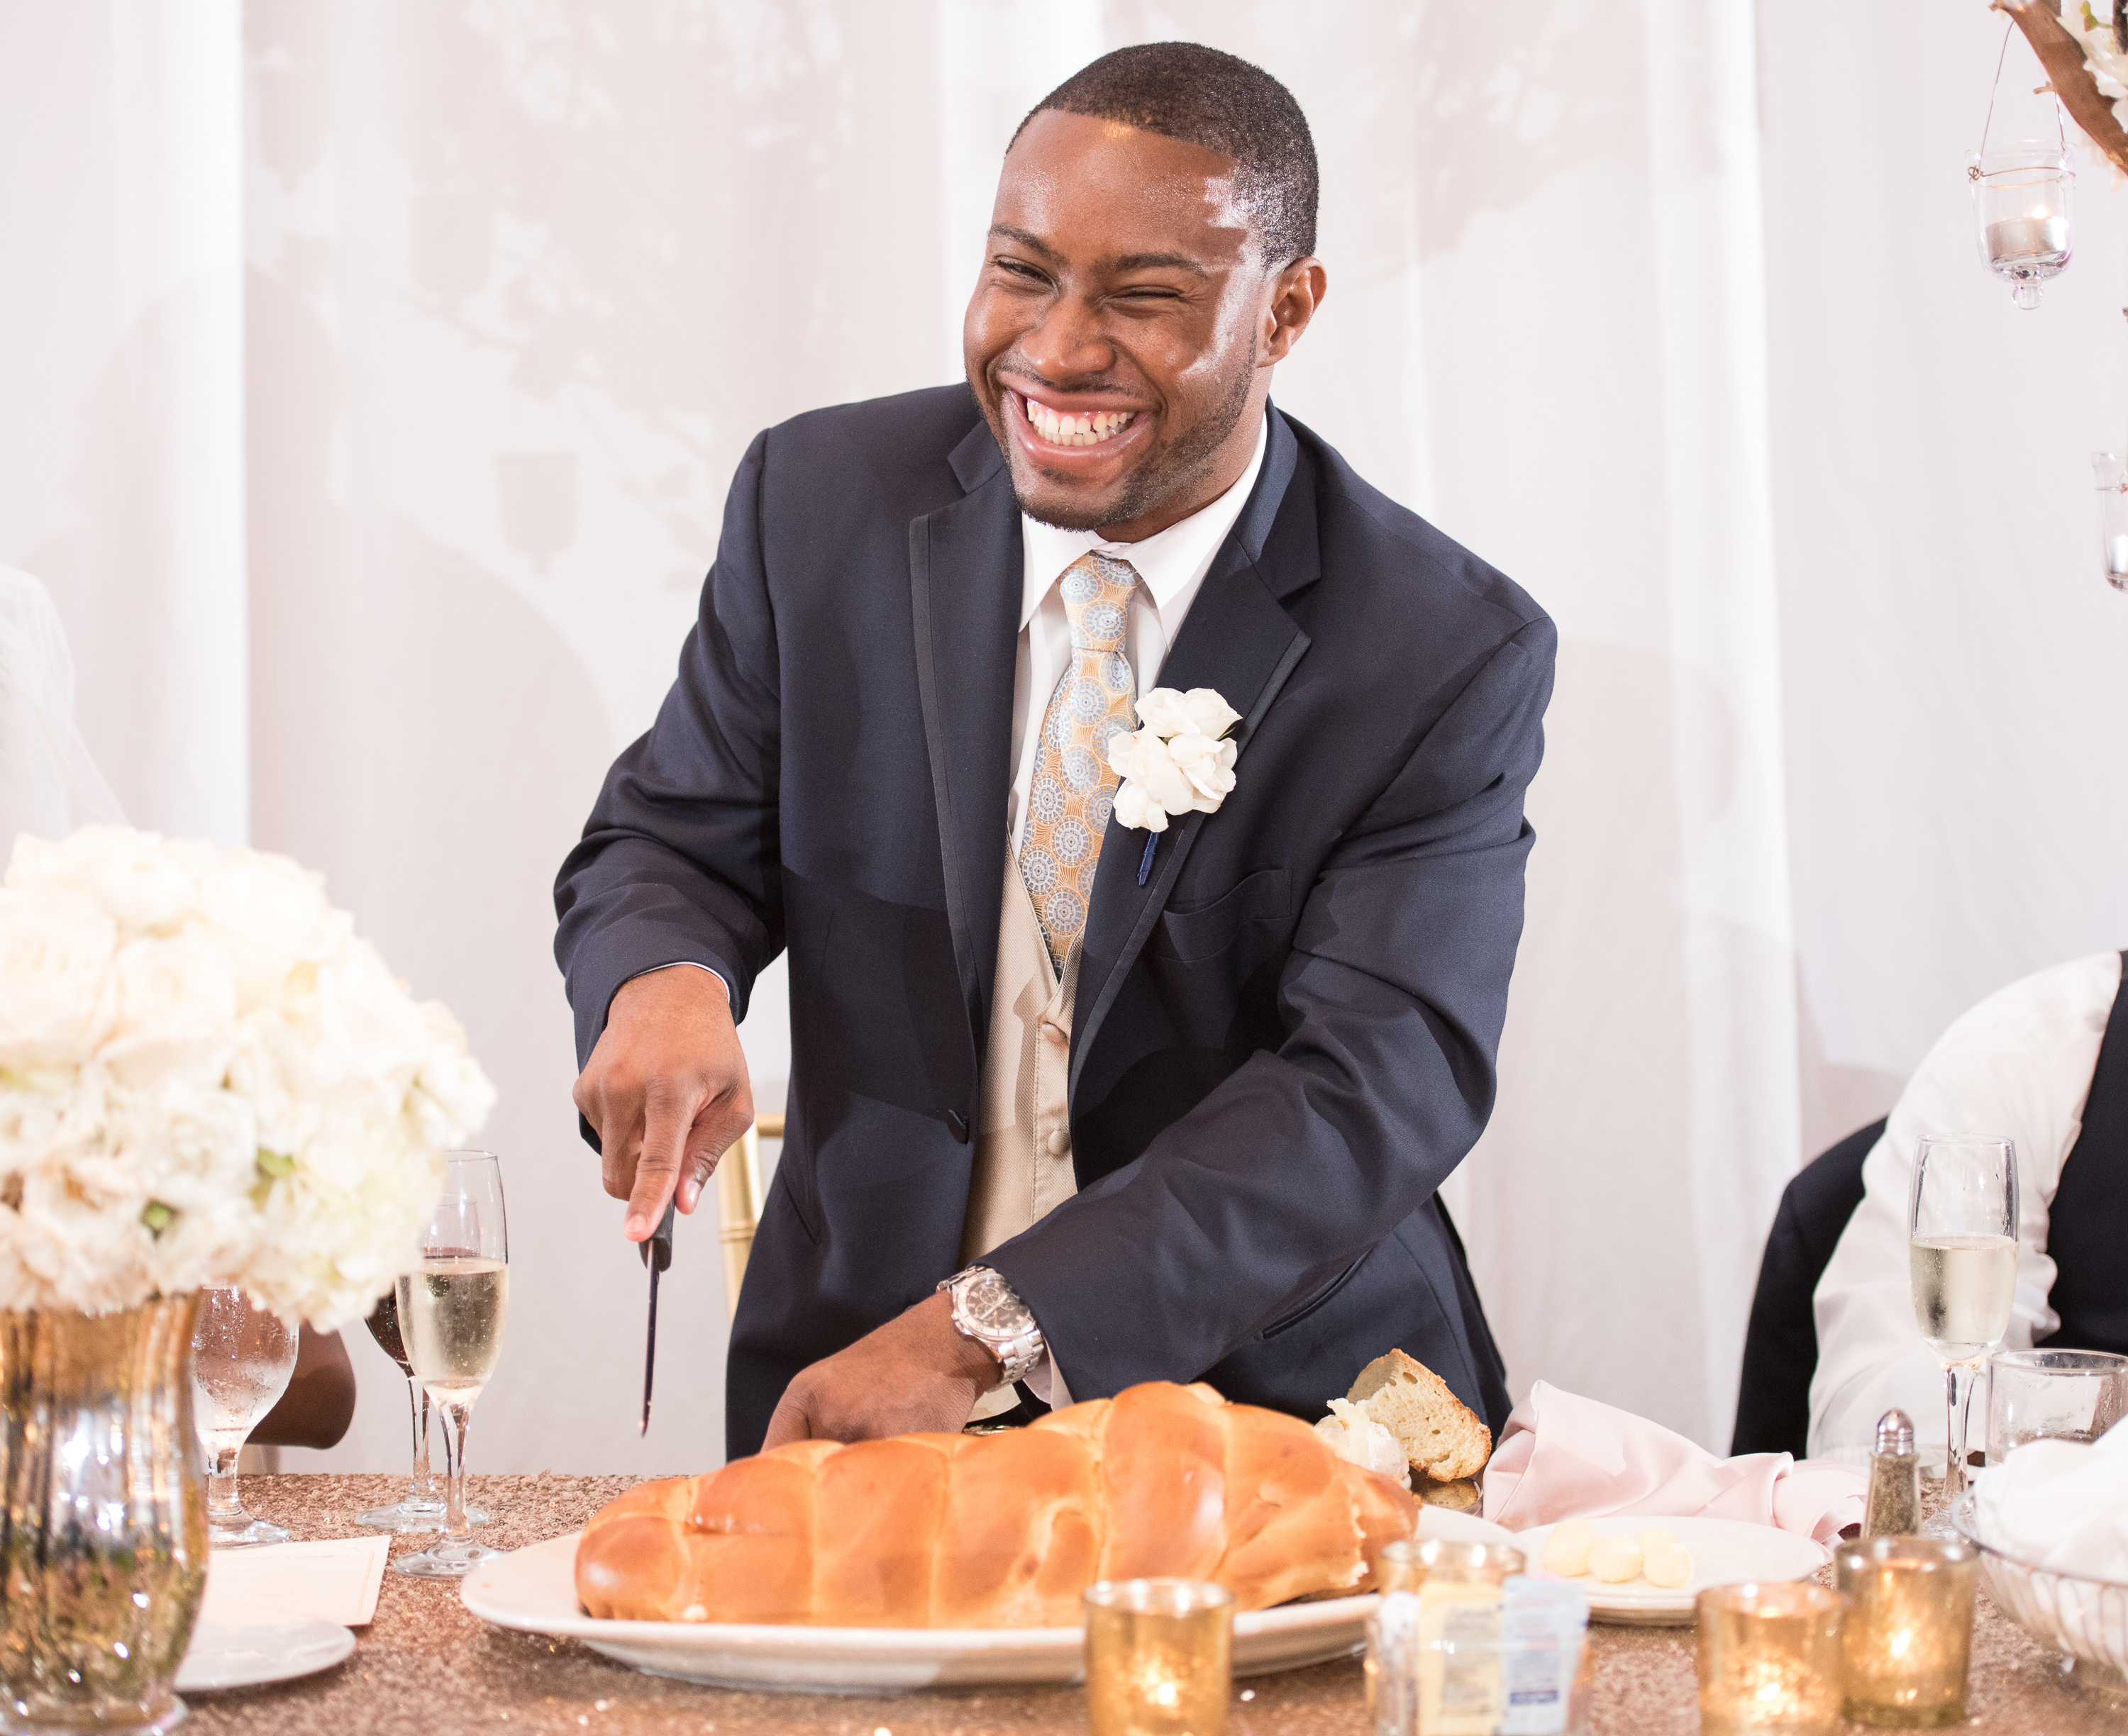 dallas-jewish-wedding-donnell-perry-photo-21